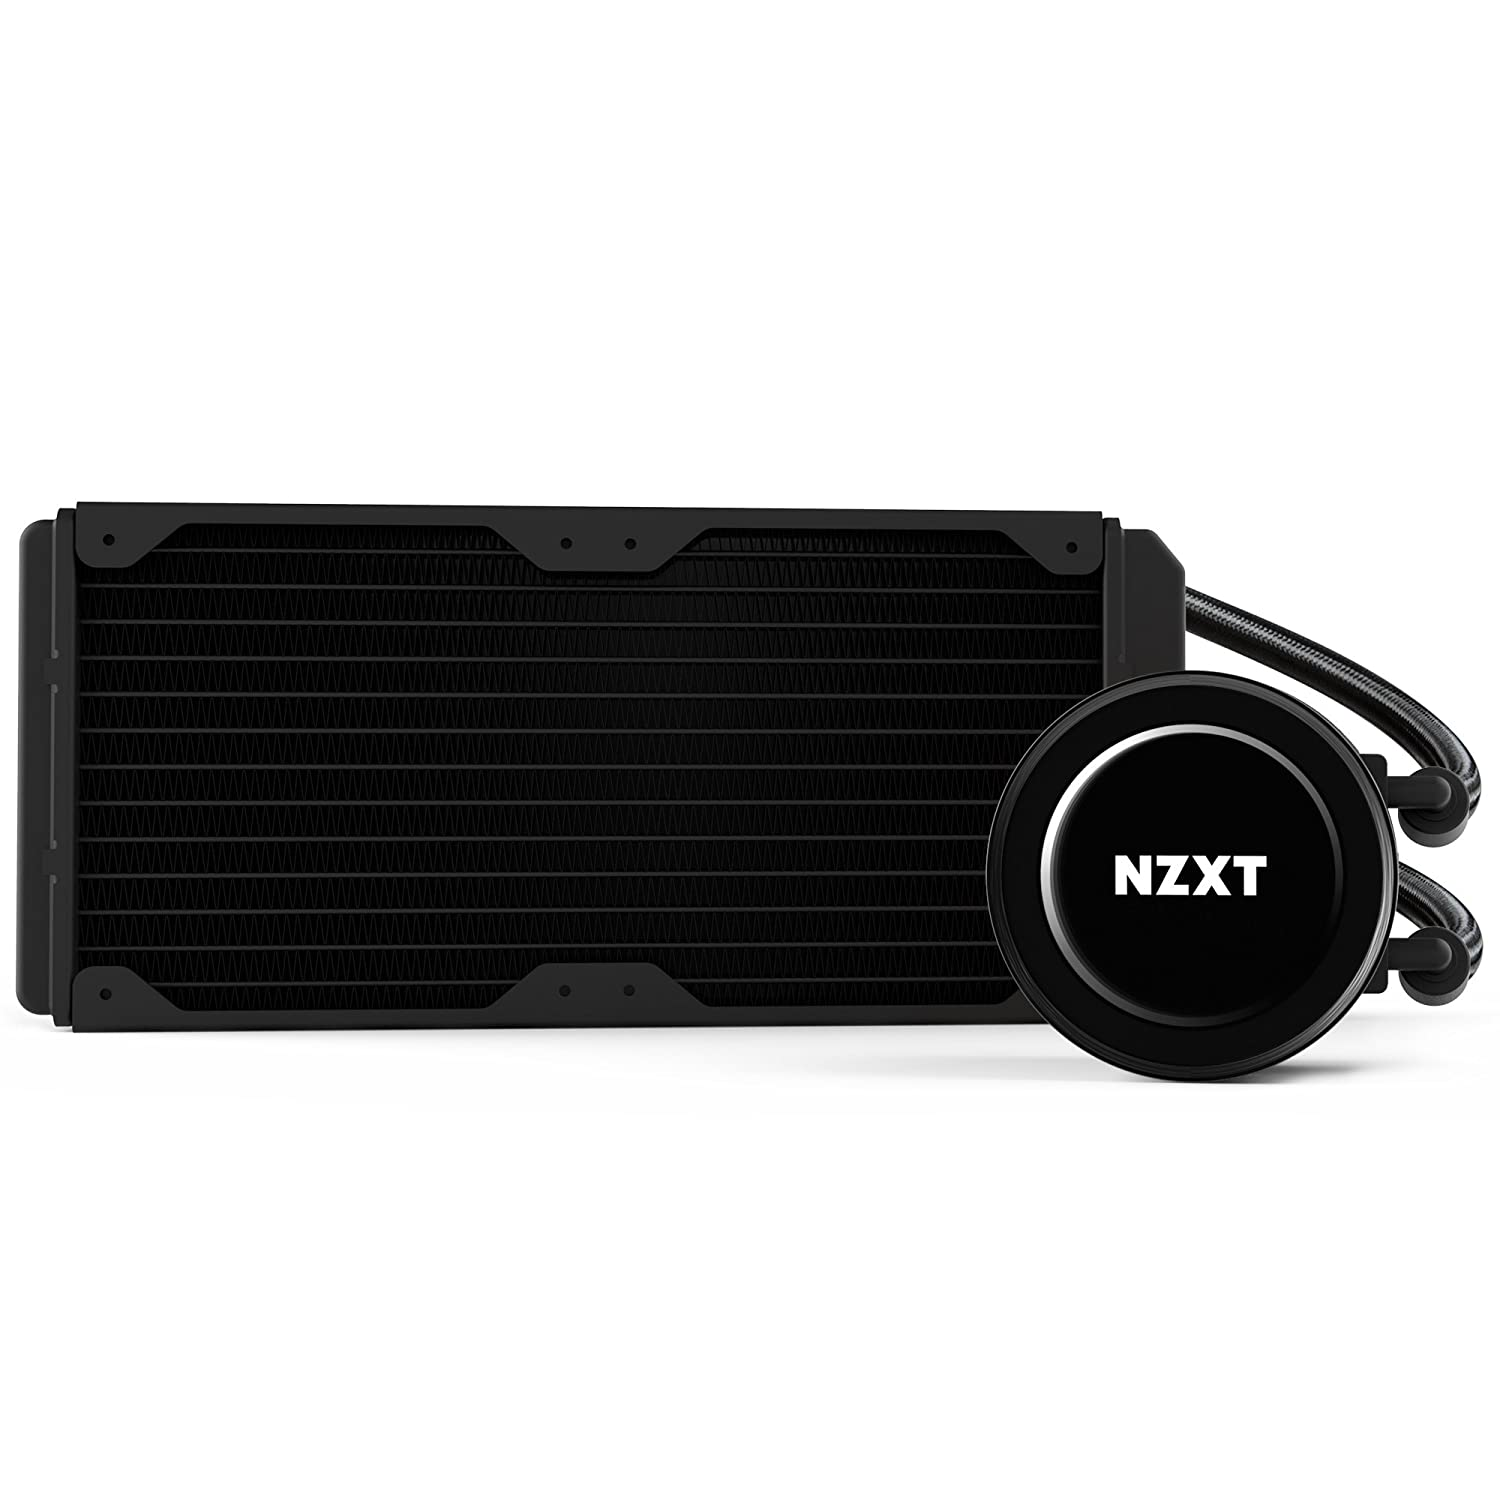 NZXT RL-KRX52-01 240 mm Kraken Series All-in-One Liquid Cooler - Black:  Amazon.co.uk: Computers & Accessories